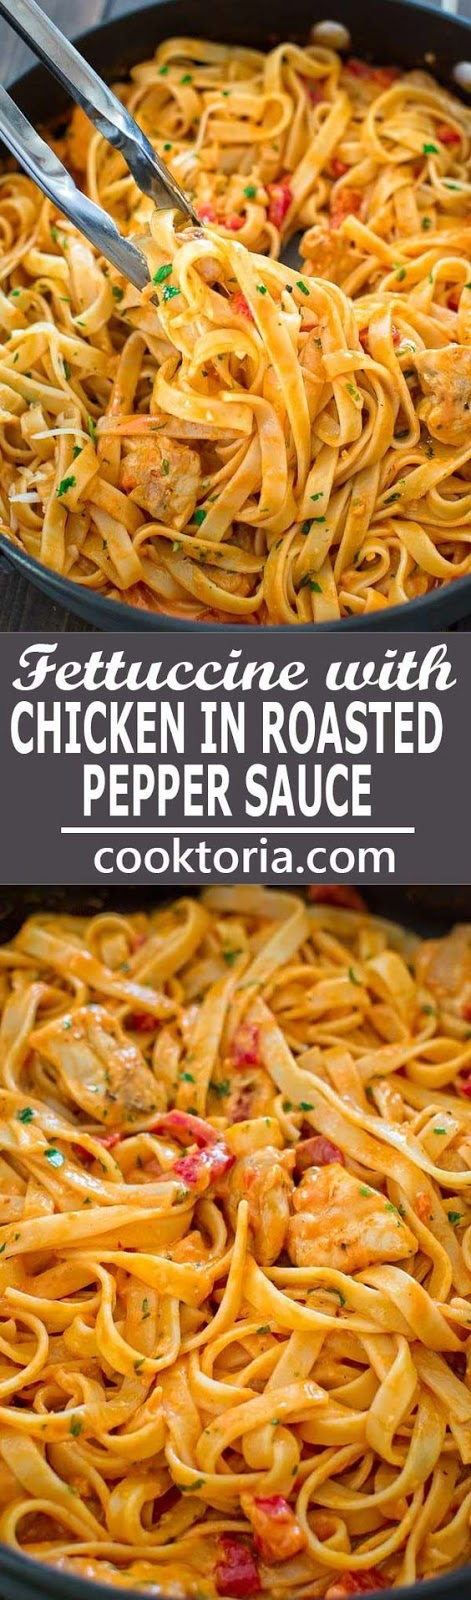 ★★★★☆ 7561 ratings | FETTUCCINE WITH ROASTED PEPPER SAUCE #HEALTHYFOOD #EASYRECIPES #DINNER #LAUCH #DELICIOUS #EASY #HOLIDAYS #RECIPE #FETTUCCINE #ROASTED #PEPPER #SAUCE